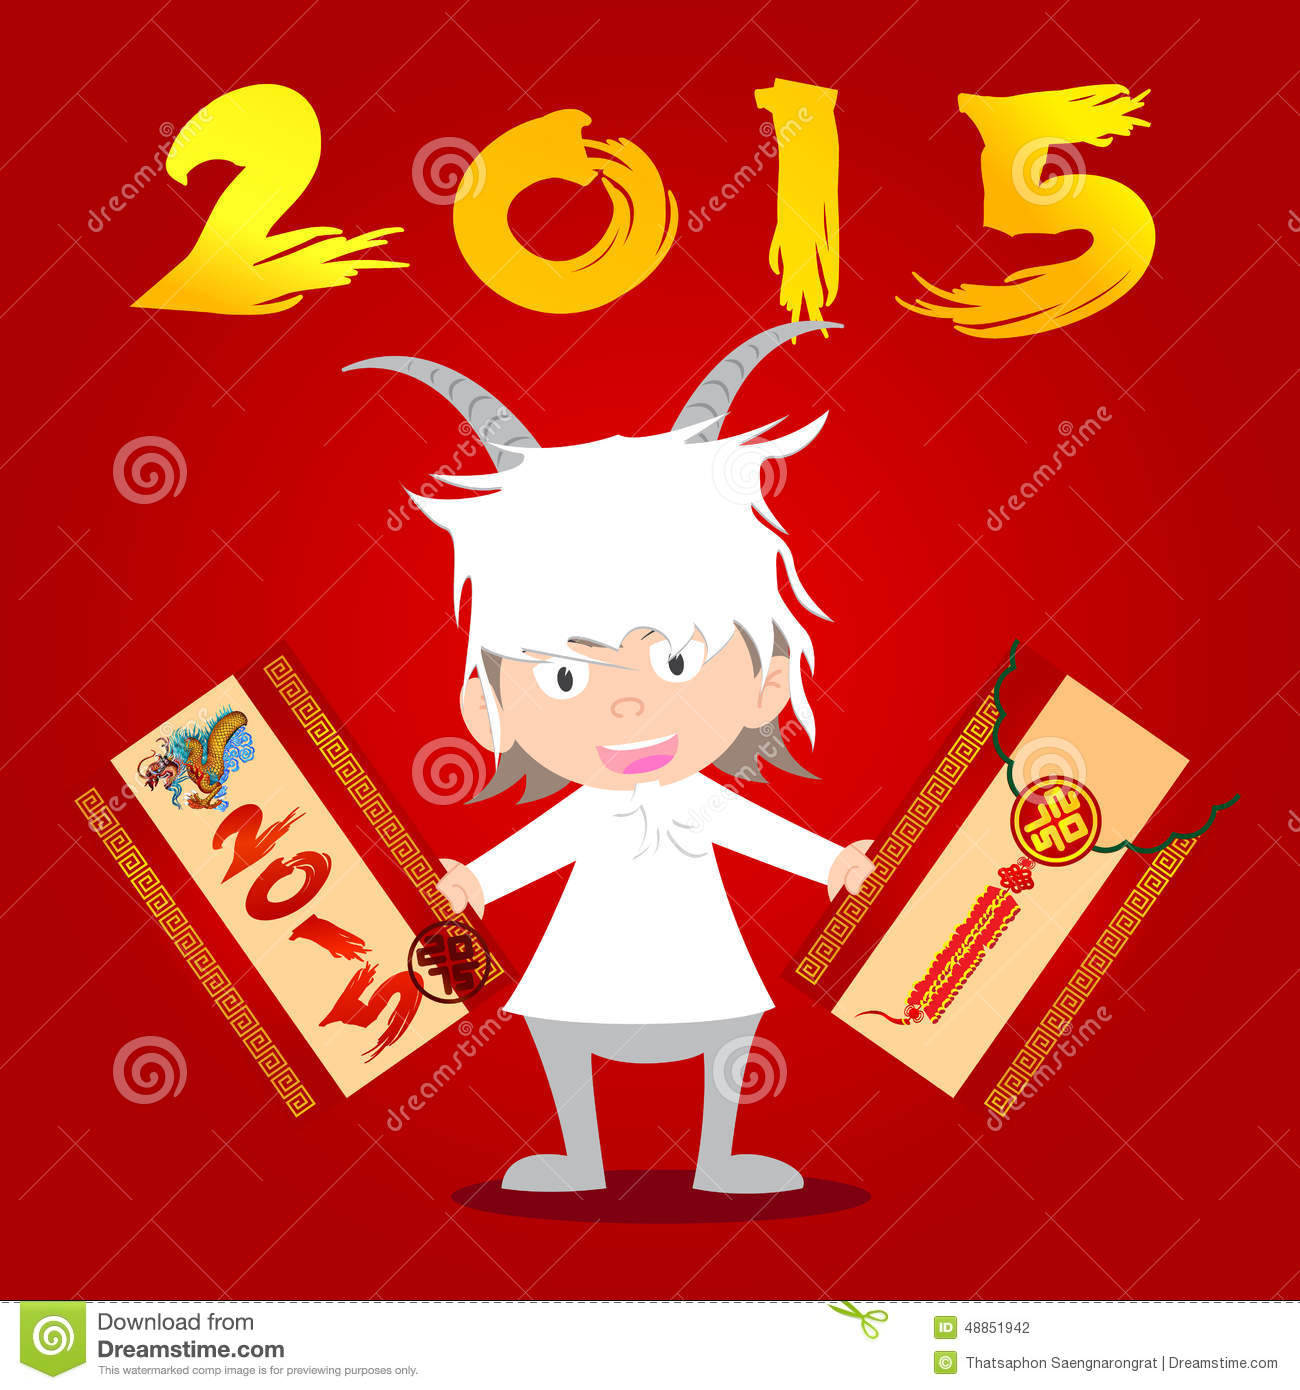 b71b2b4c4 Baby in goat fancy dress costume holding money reward envelope for chinese  new year 2015